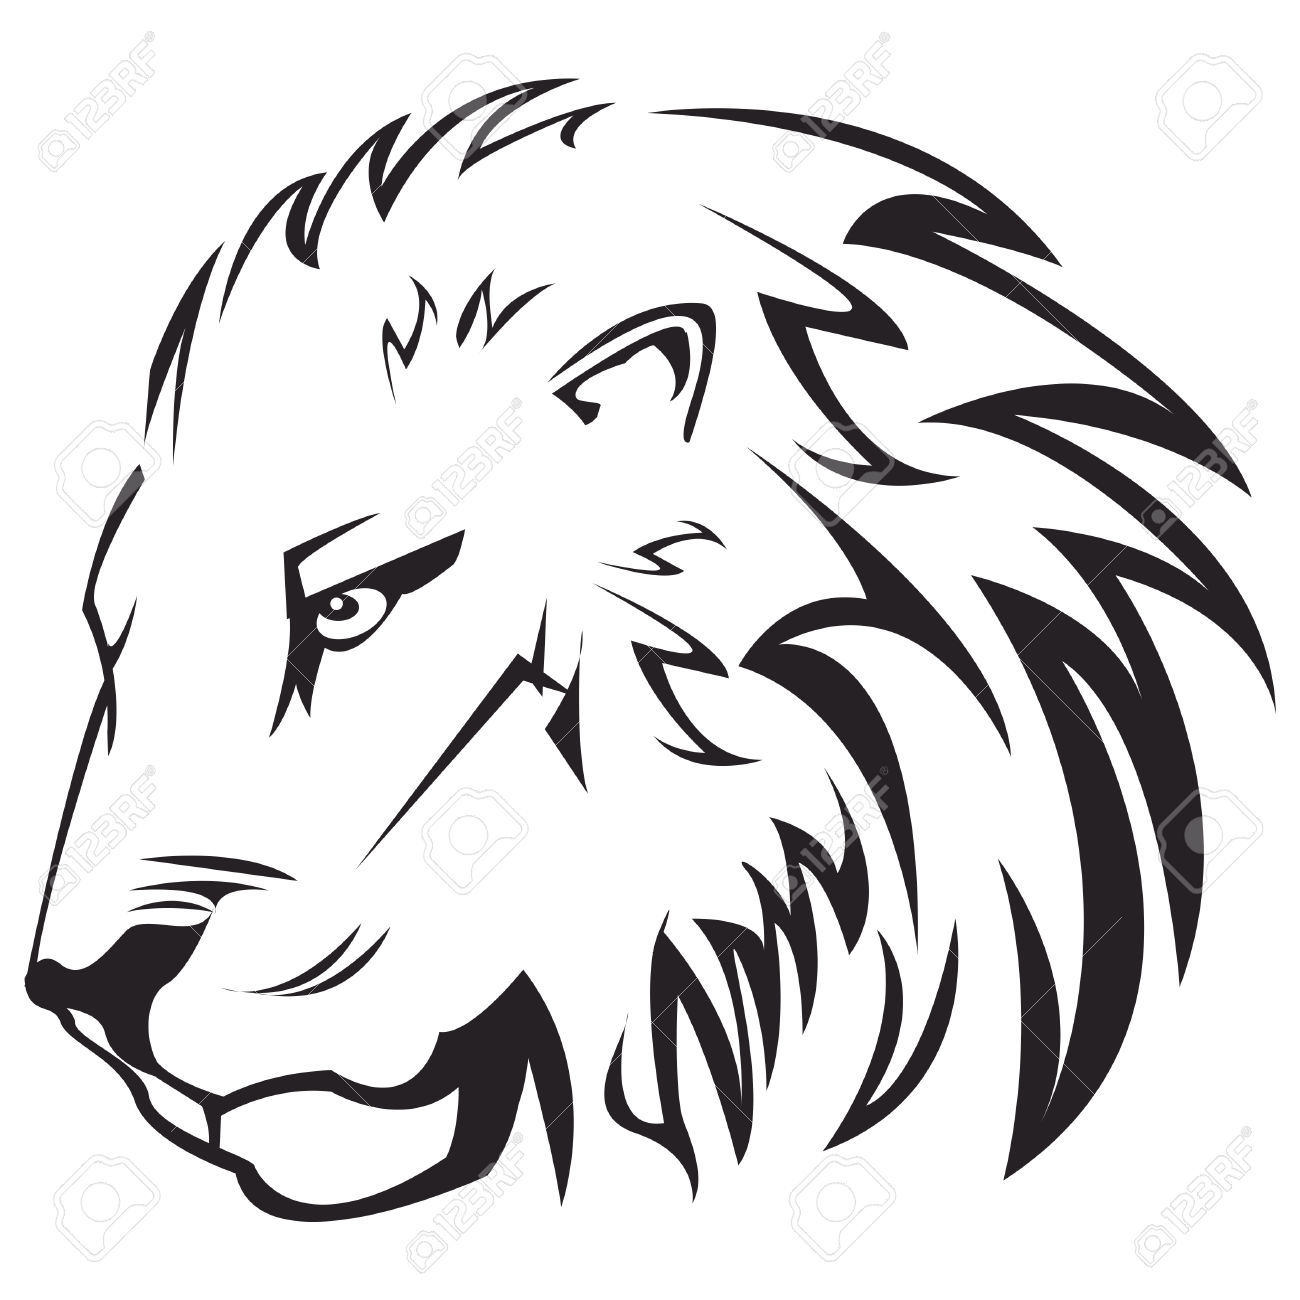 Simple Lion Outline Tattoo.